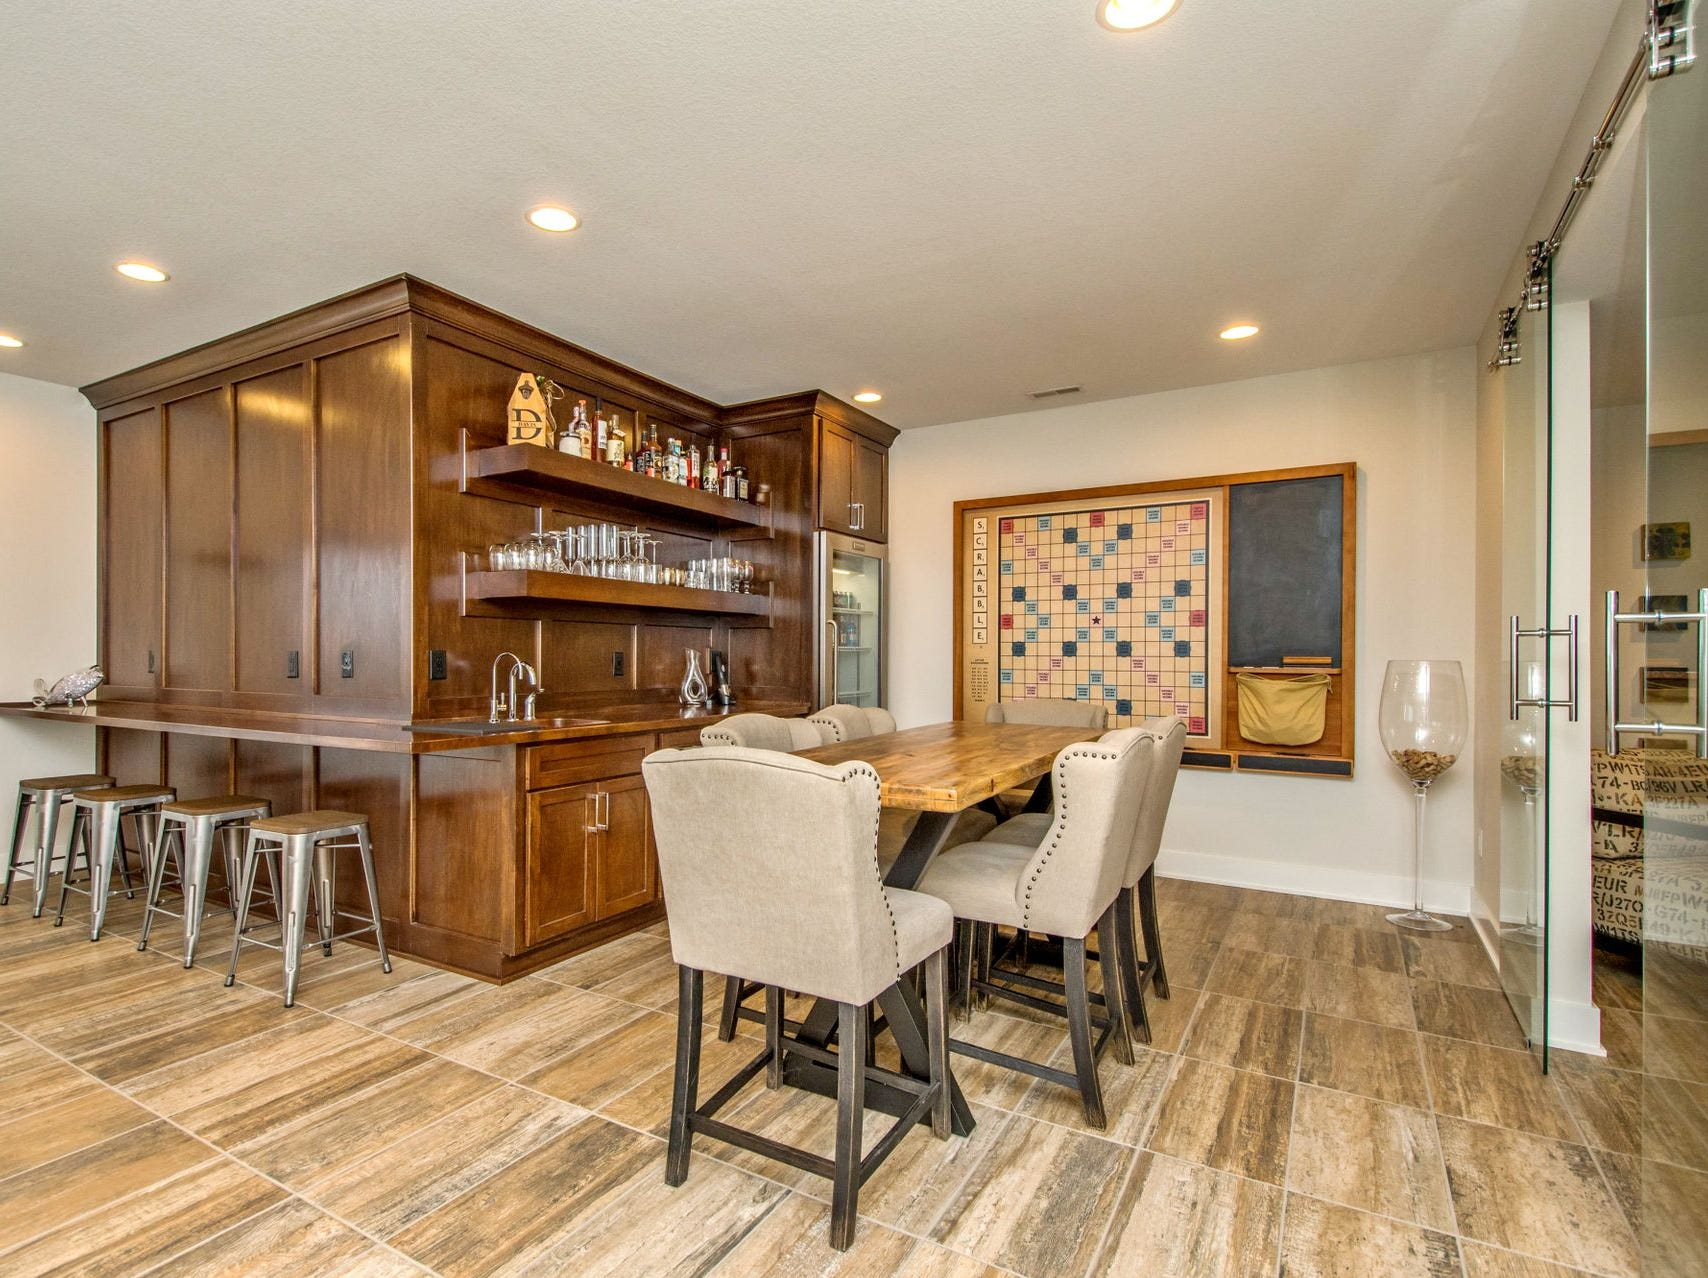 This immaculate executive home is located in the Timber Ridge Estates development in Van Meter, just minutes west of the Des Moines metro.